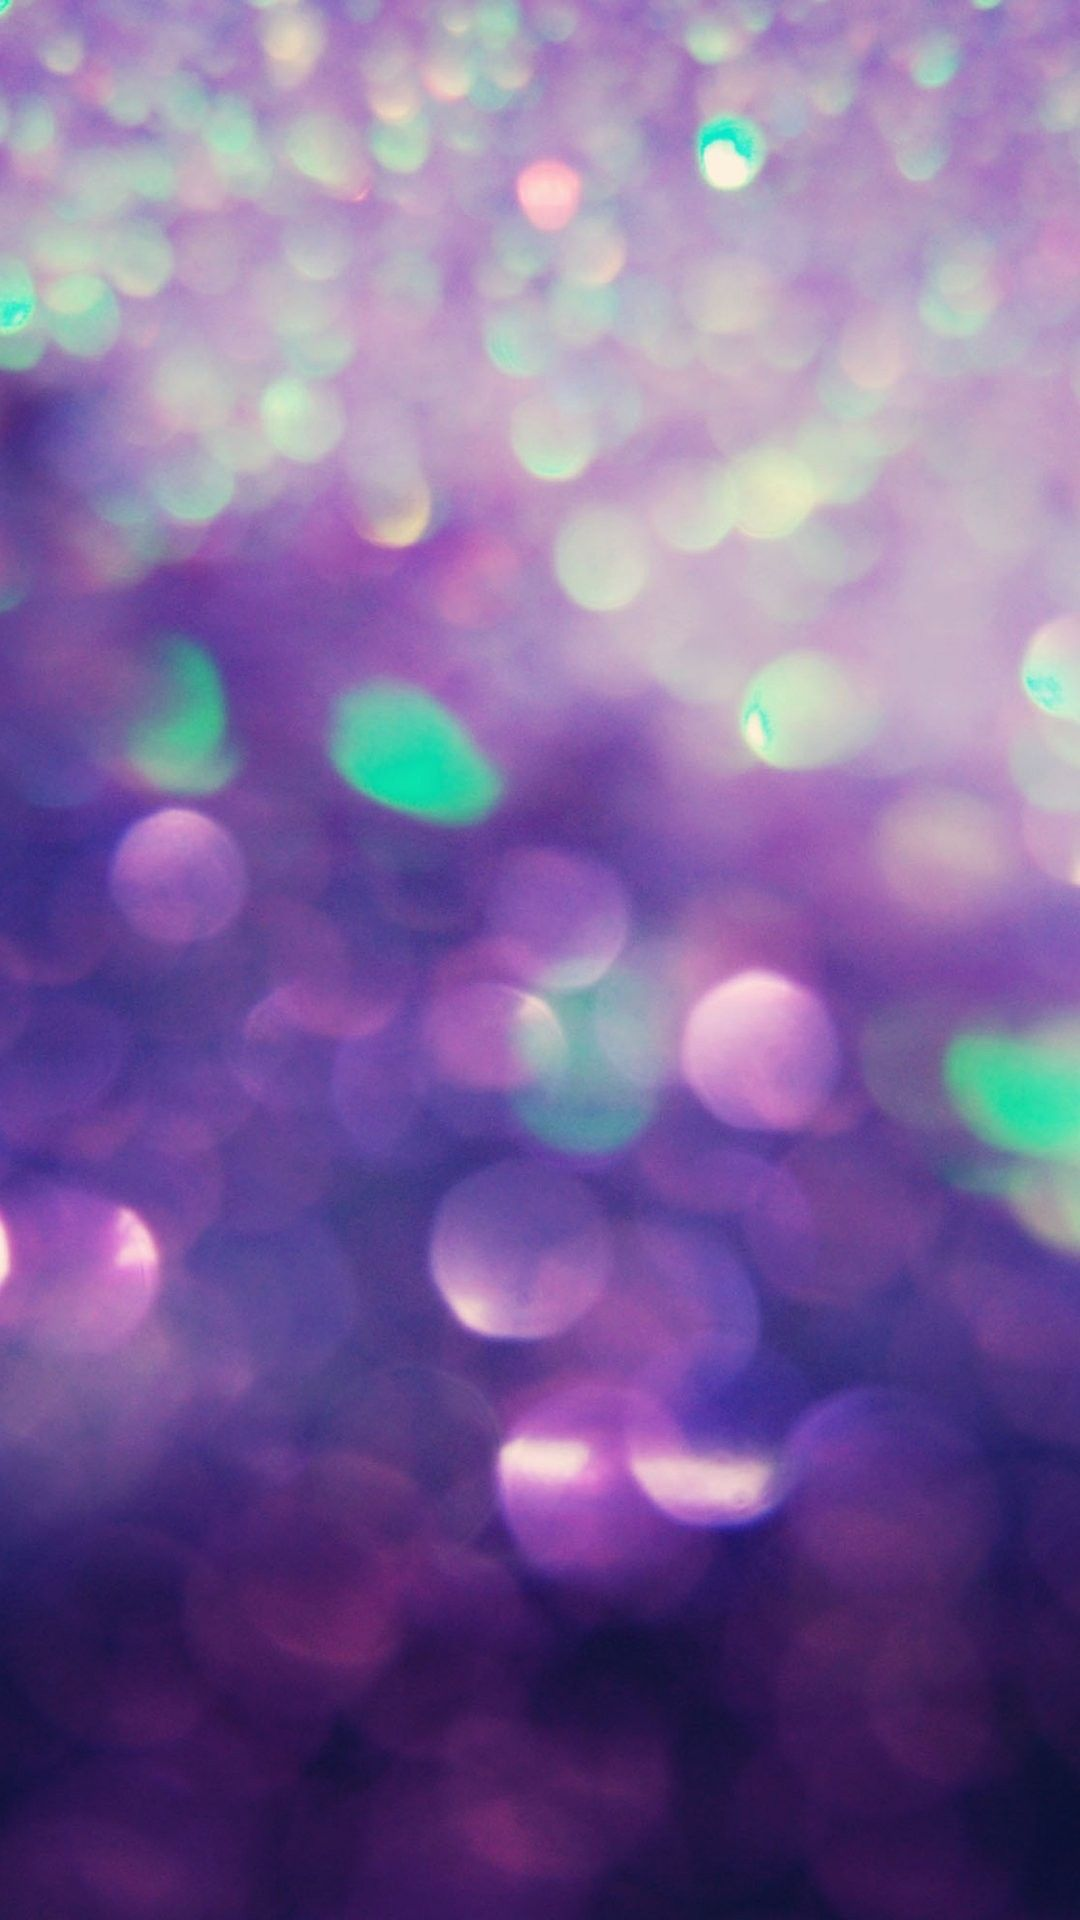 Sparkly Iphone 6 Plus Wallpaper 24031 Abstract Iphone 6 Plus Wallpapers Abstract Iphone 6 Iphone 6 Plus Wallpaper Android Wallpaper Pink Wallpaper Iphone